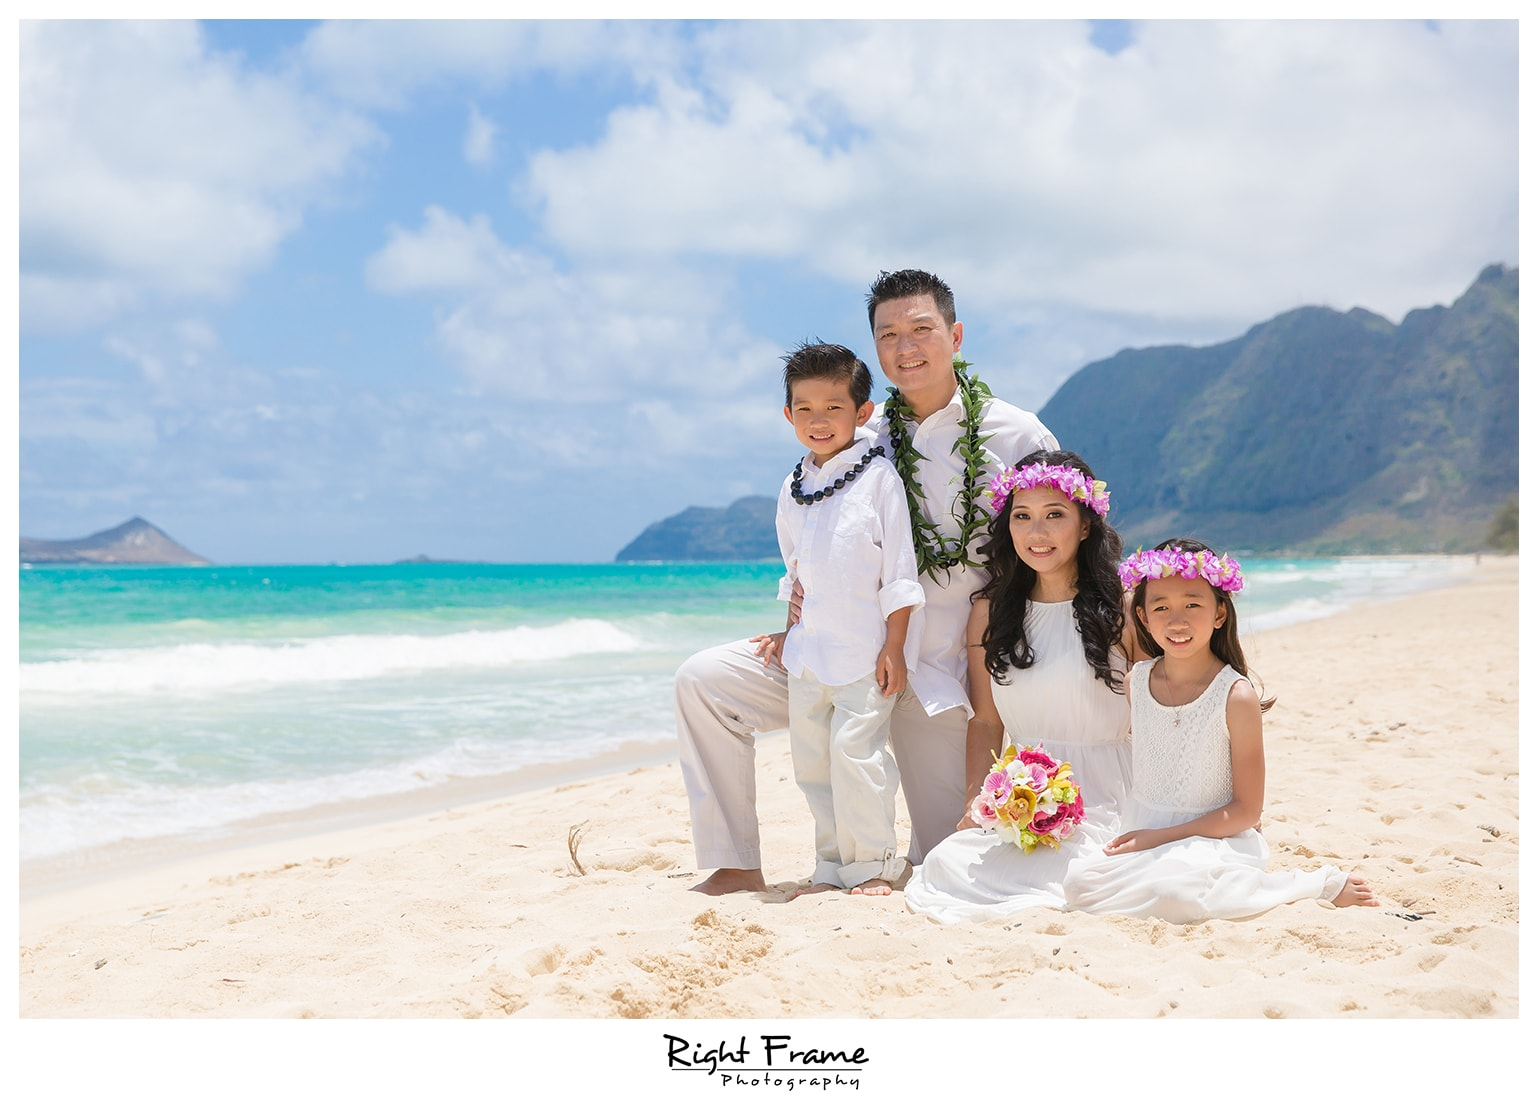 Beach Wedding Ceremony Oahu: Wedding Vow Renewal In Oahu Hawaii By RIGHT FRAME PHOTOGRAPHY